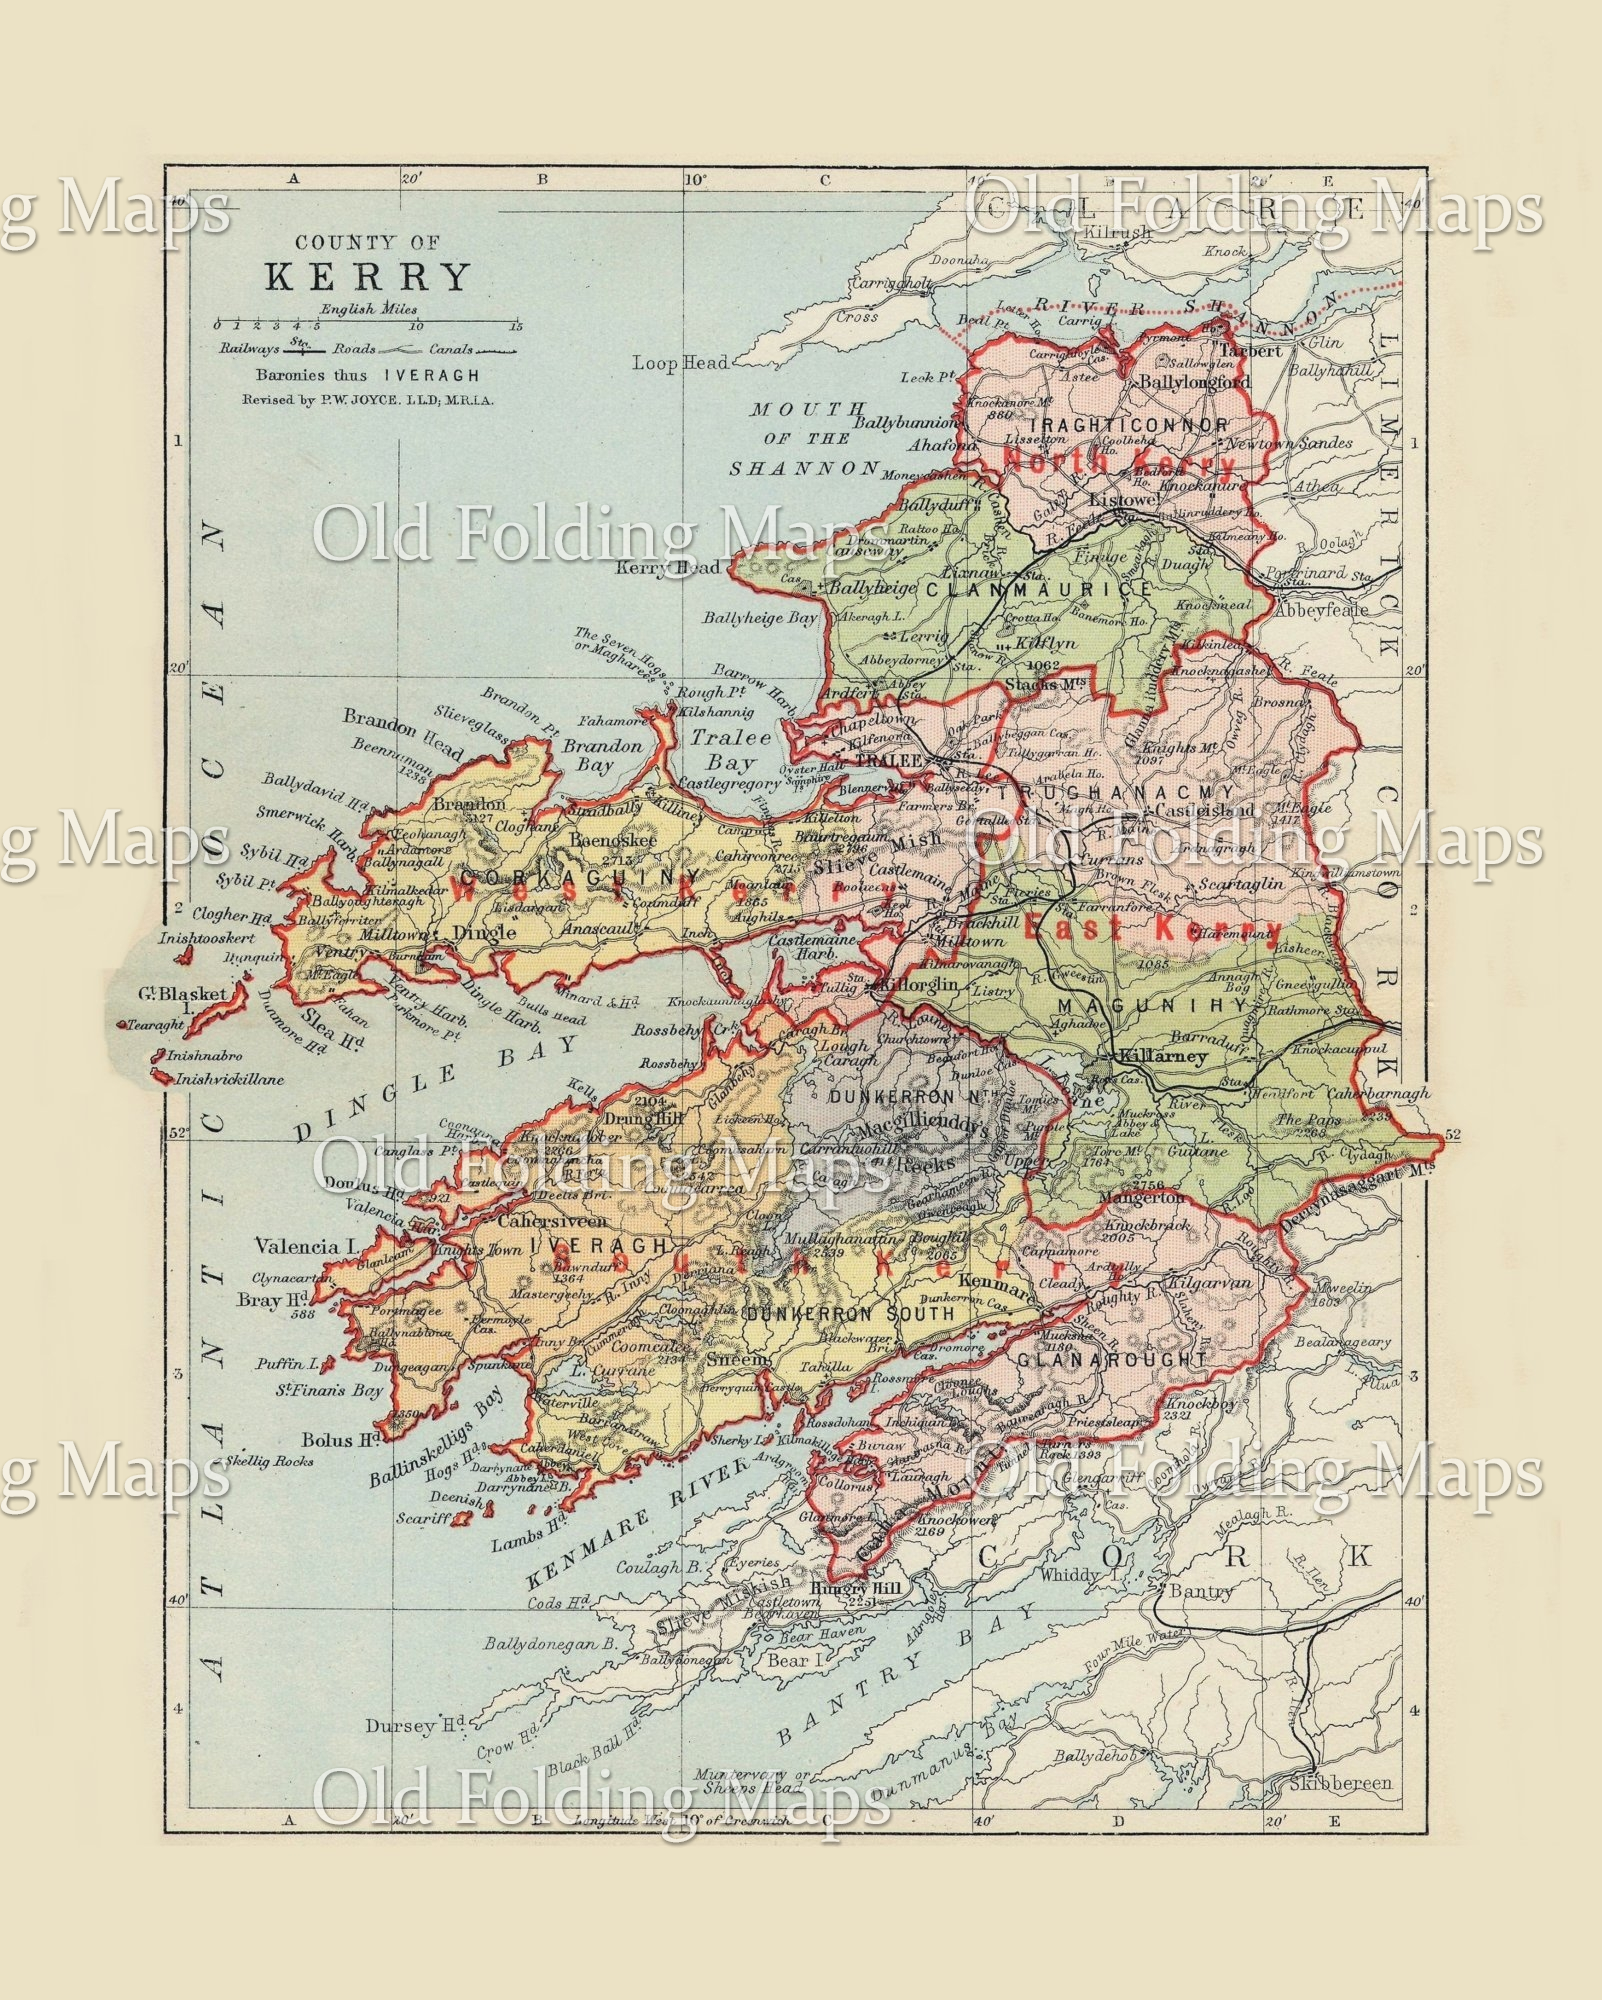 Antique County Map of Kerry, Ireland circa 1884